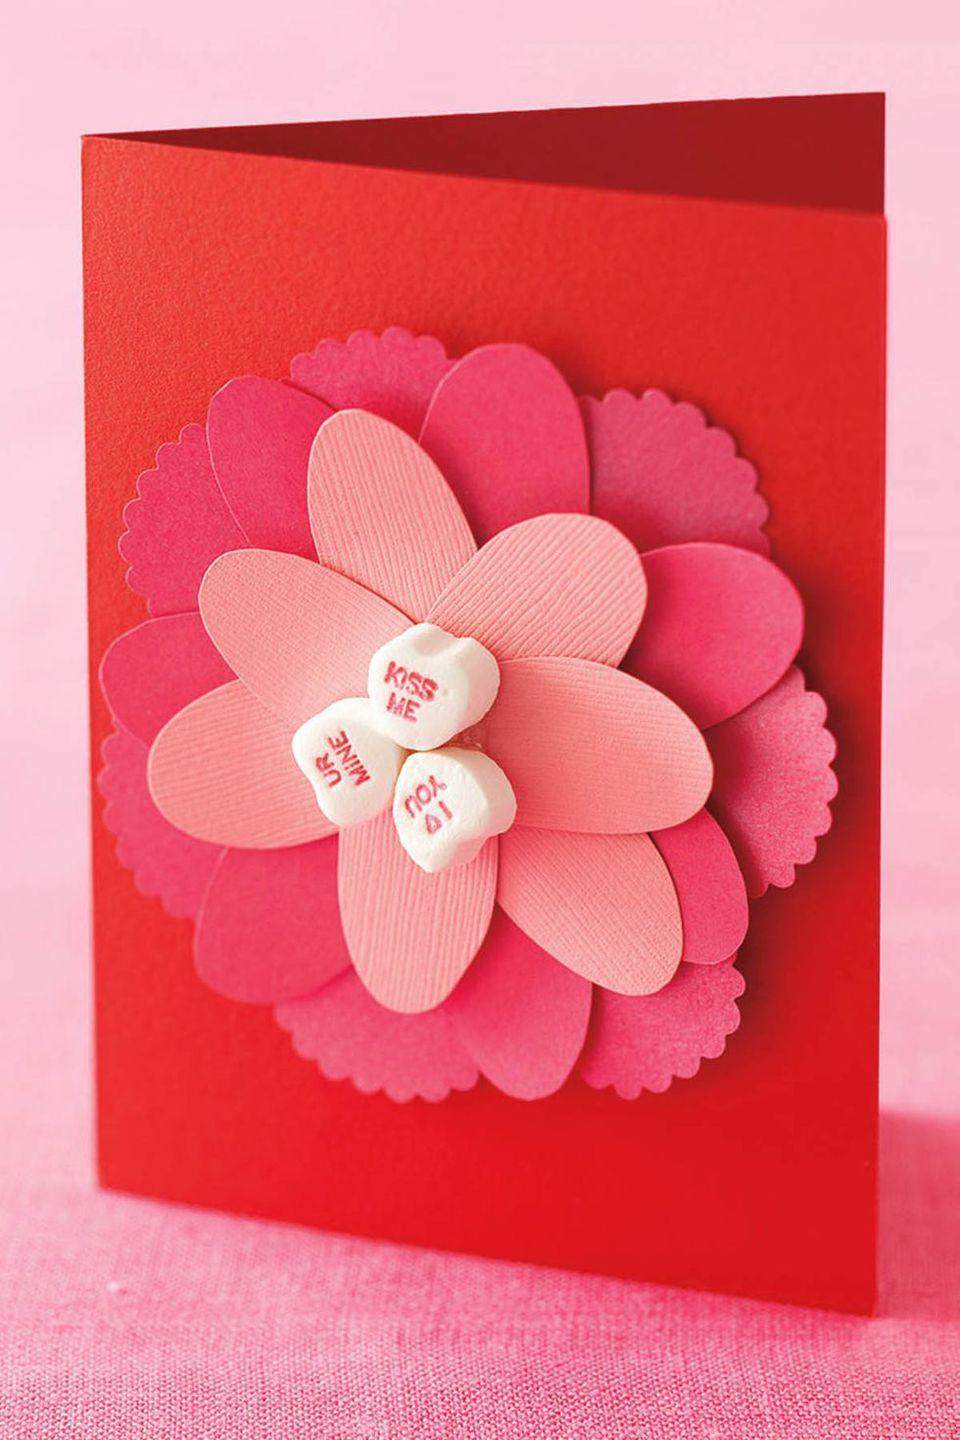 """<p>Lean on hearts of all kinds — paper<em> and</em> sugar — for a pretty card made by yours truly.</p><p><em><a href=""""https://www.womansday.com/home/crafts-projects/how-to/a5422/valentines-day-craft-how-to-cut-paper-flower-card-114599/"""" rel=""""nofollow noopener"""" target=""""_blank"""" data-ylk=""""slk:Get the tutorial at Woman's Day »"""" class=""""link rapid-noclick-resp"""">Get the tutorial at Woman's Day »</a> </em></p>"""